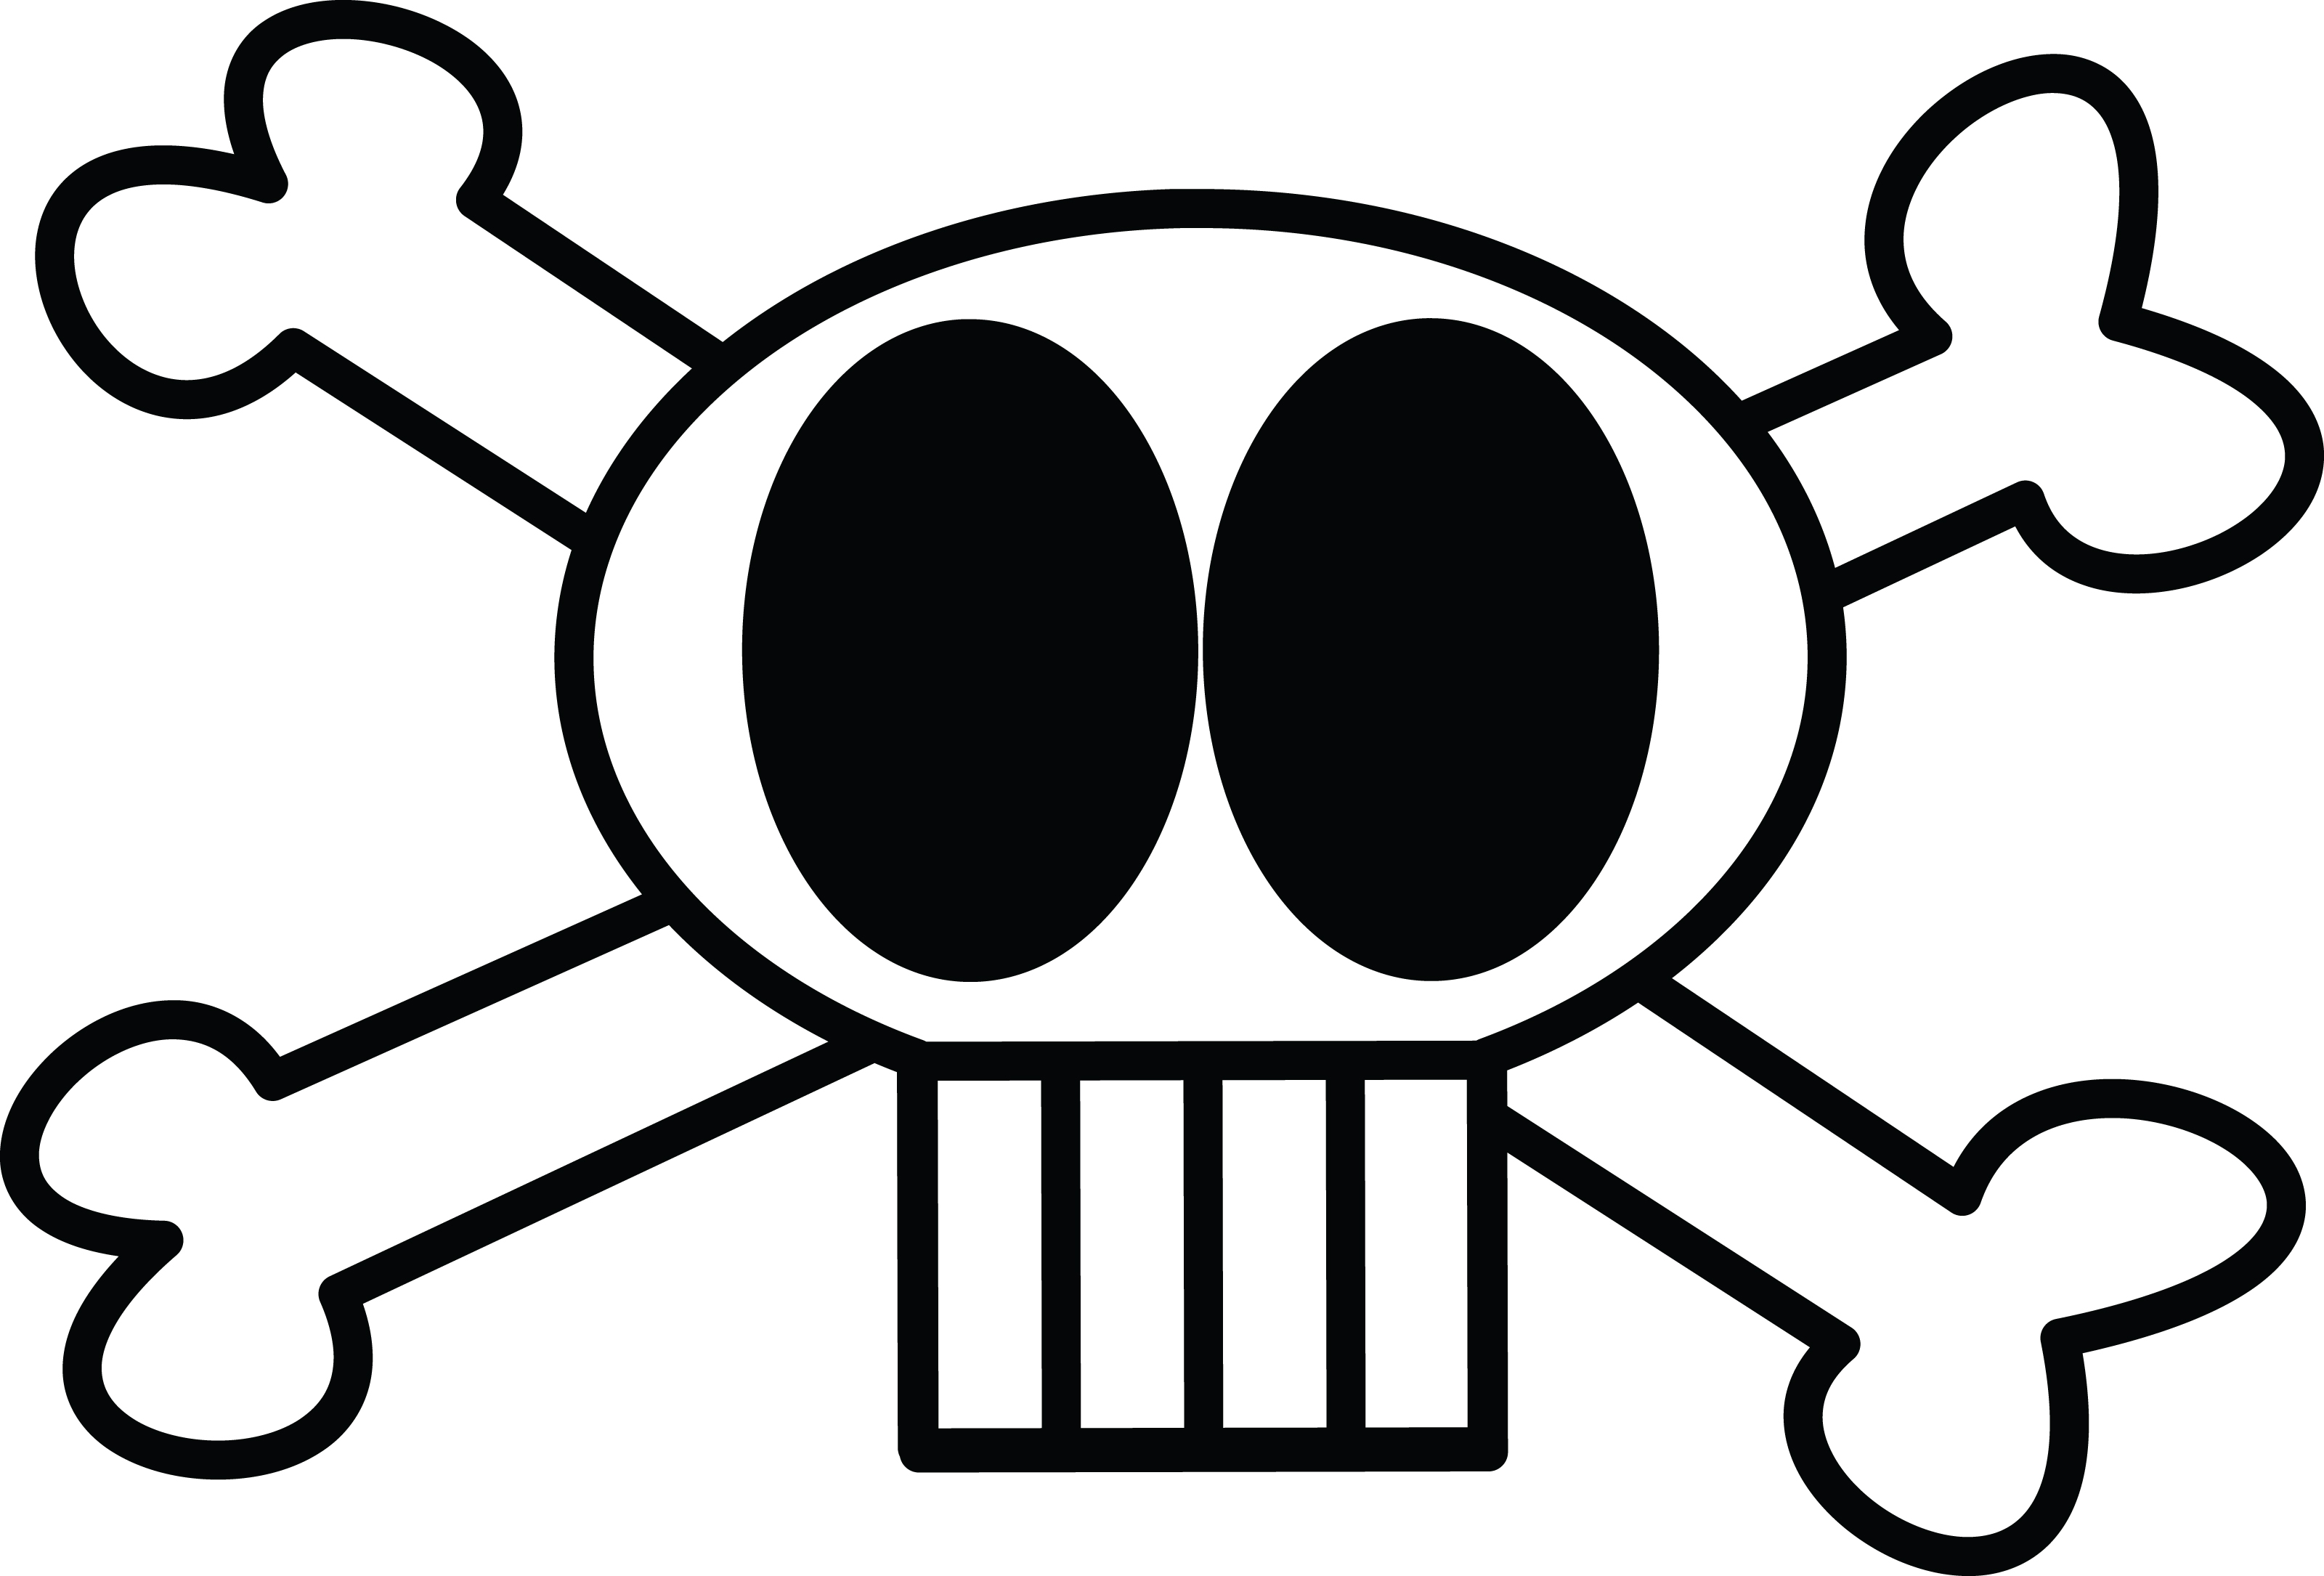 Free Clipart Illustration Of Skull And C-Free Clipart Illustration Of Skull And Crossbones-13